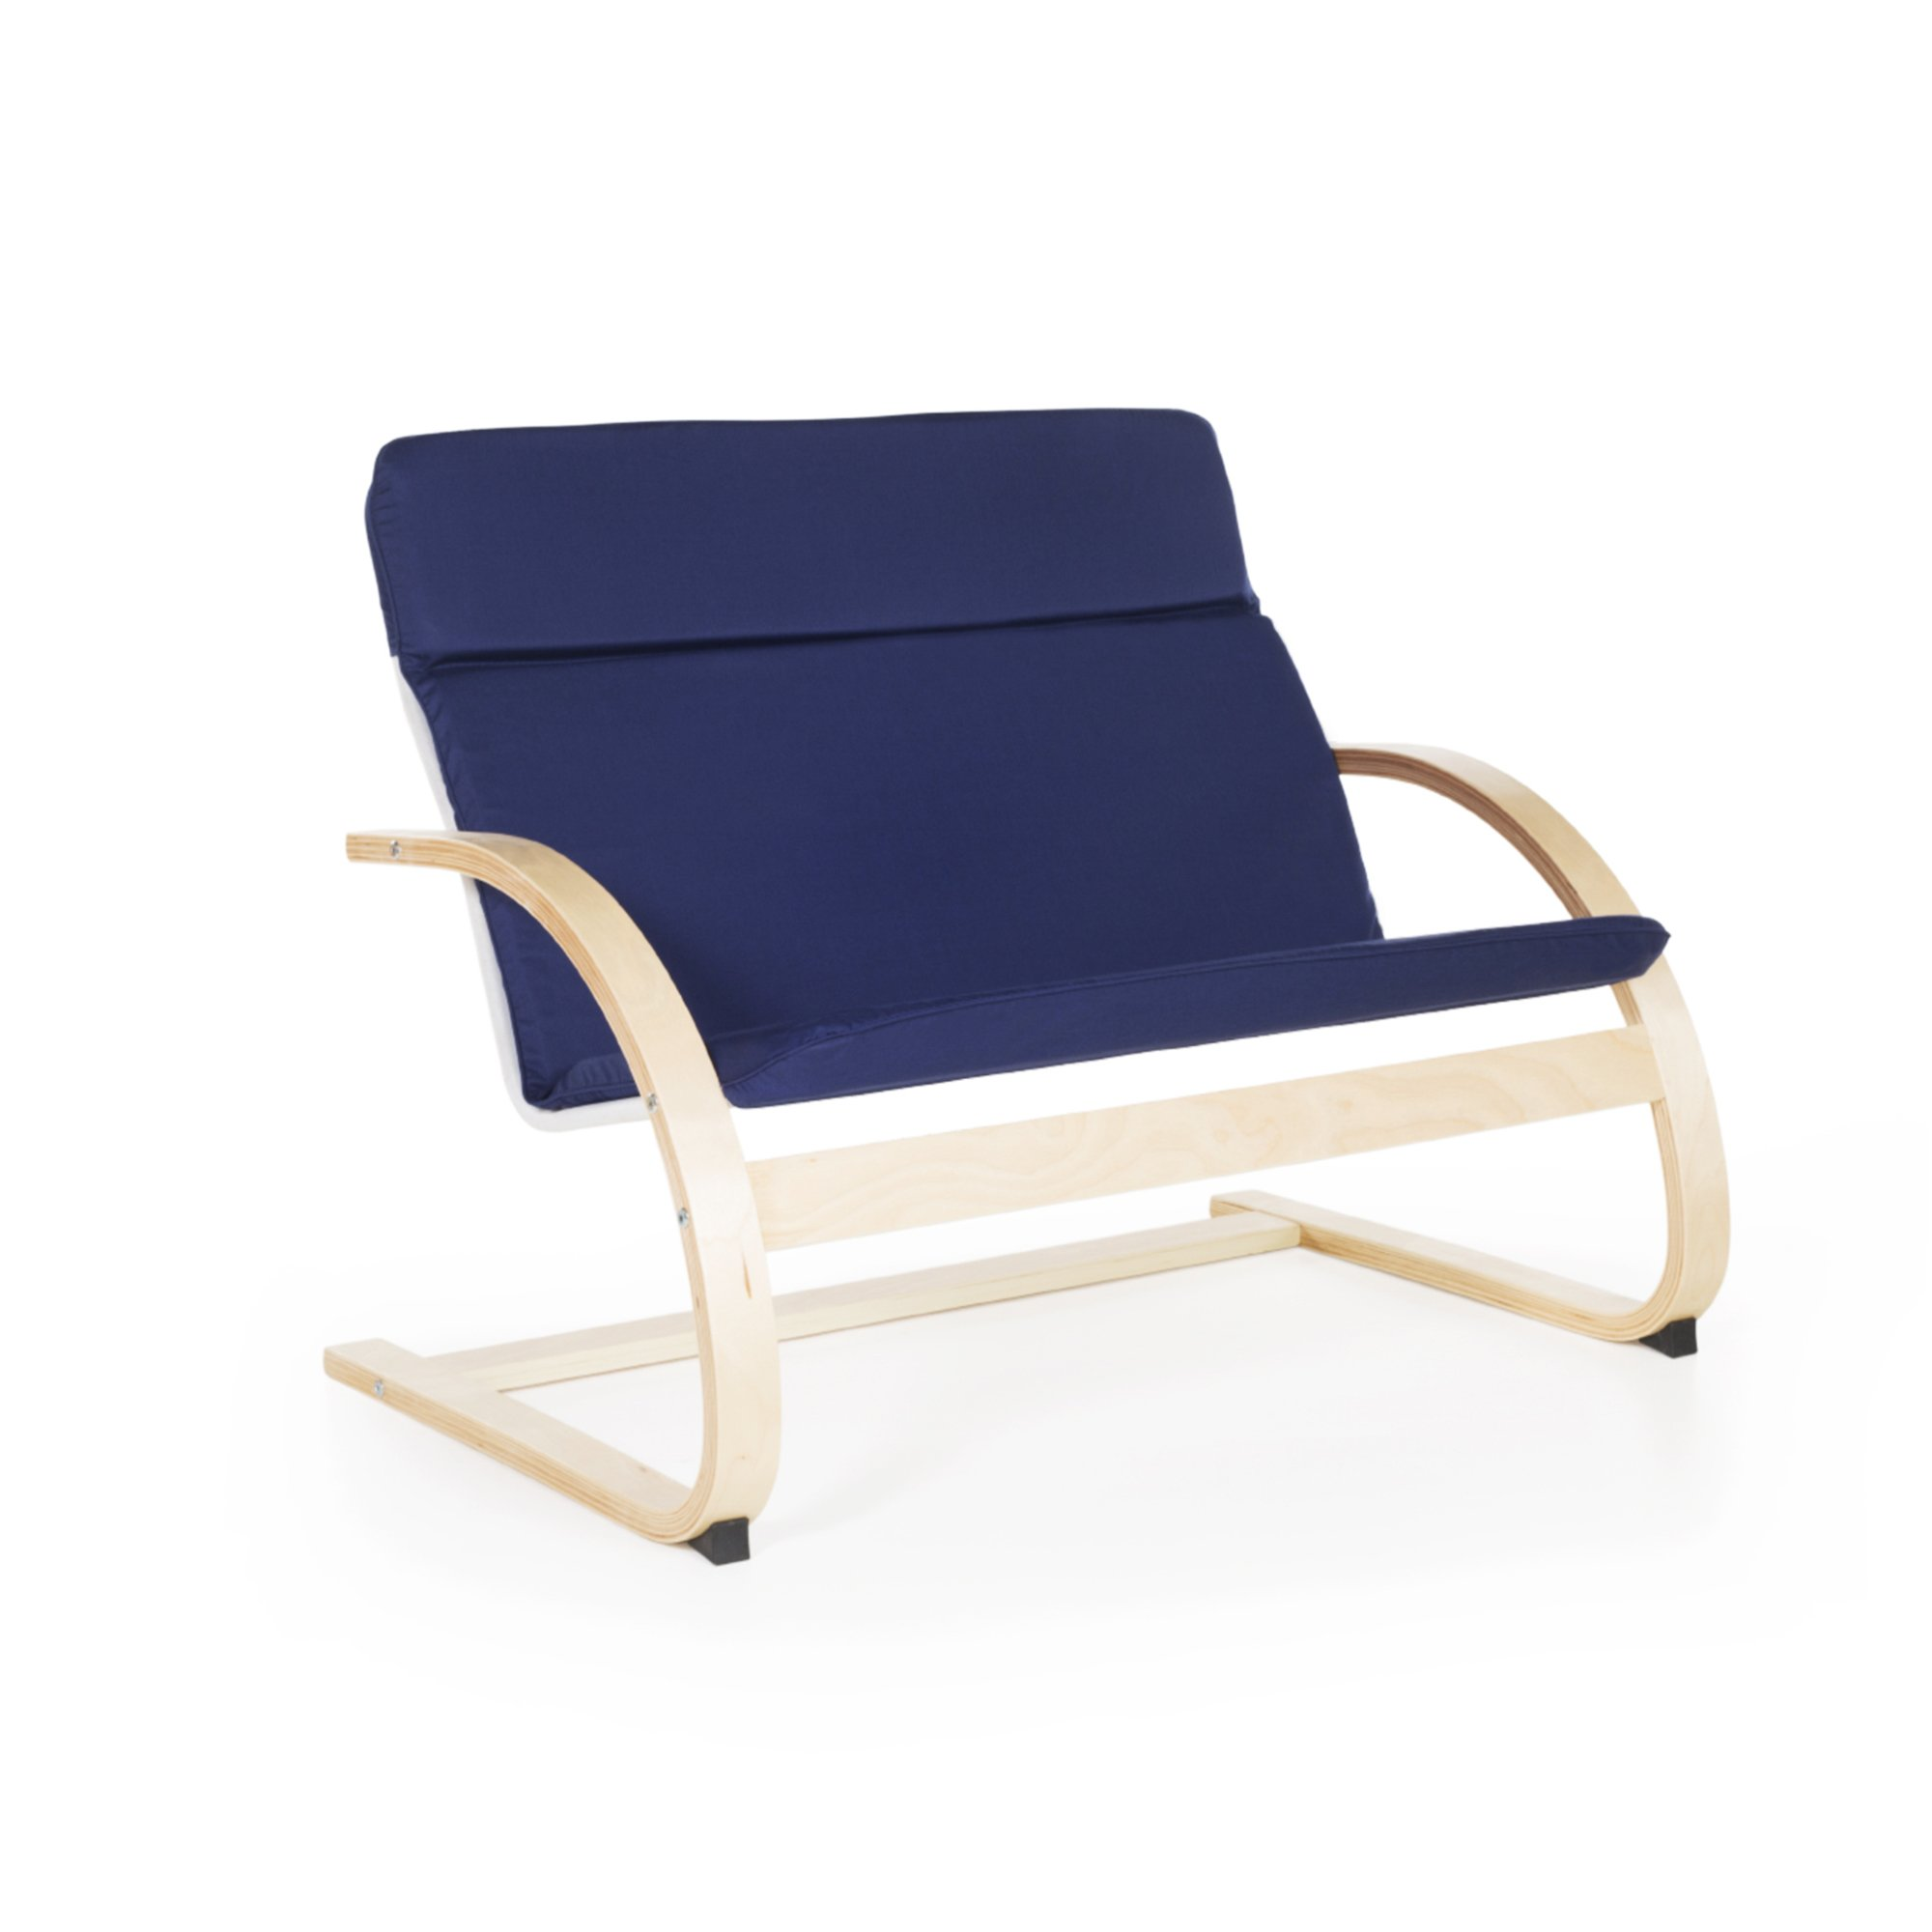 Guidecraft Nordic Couch Blue G6452